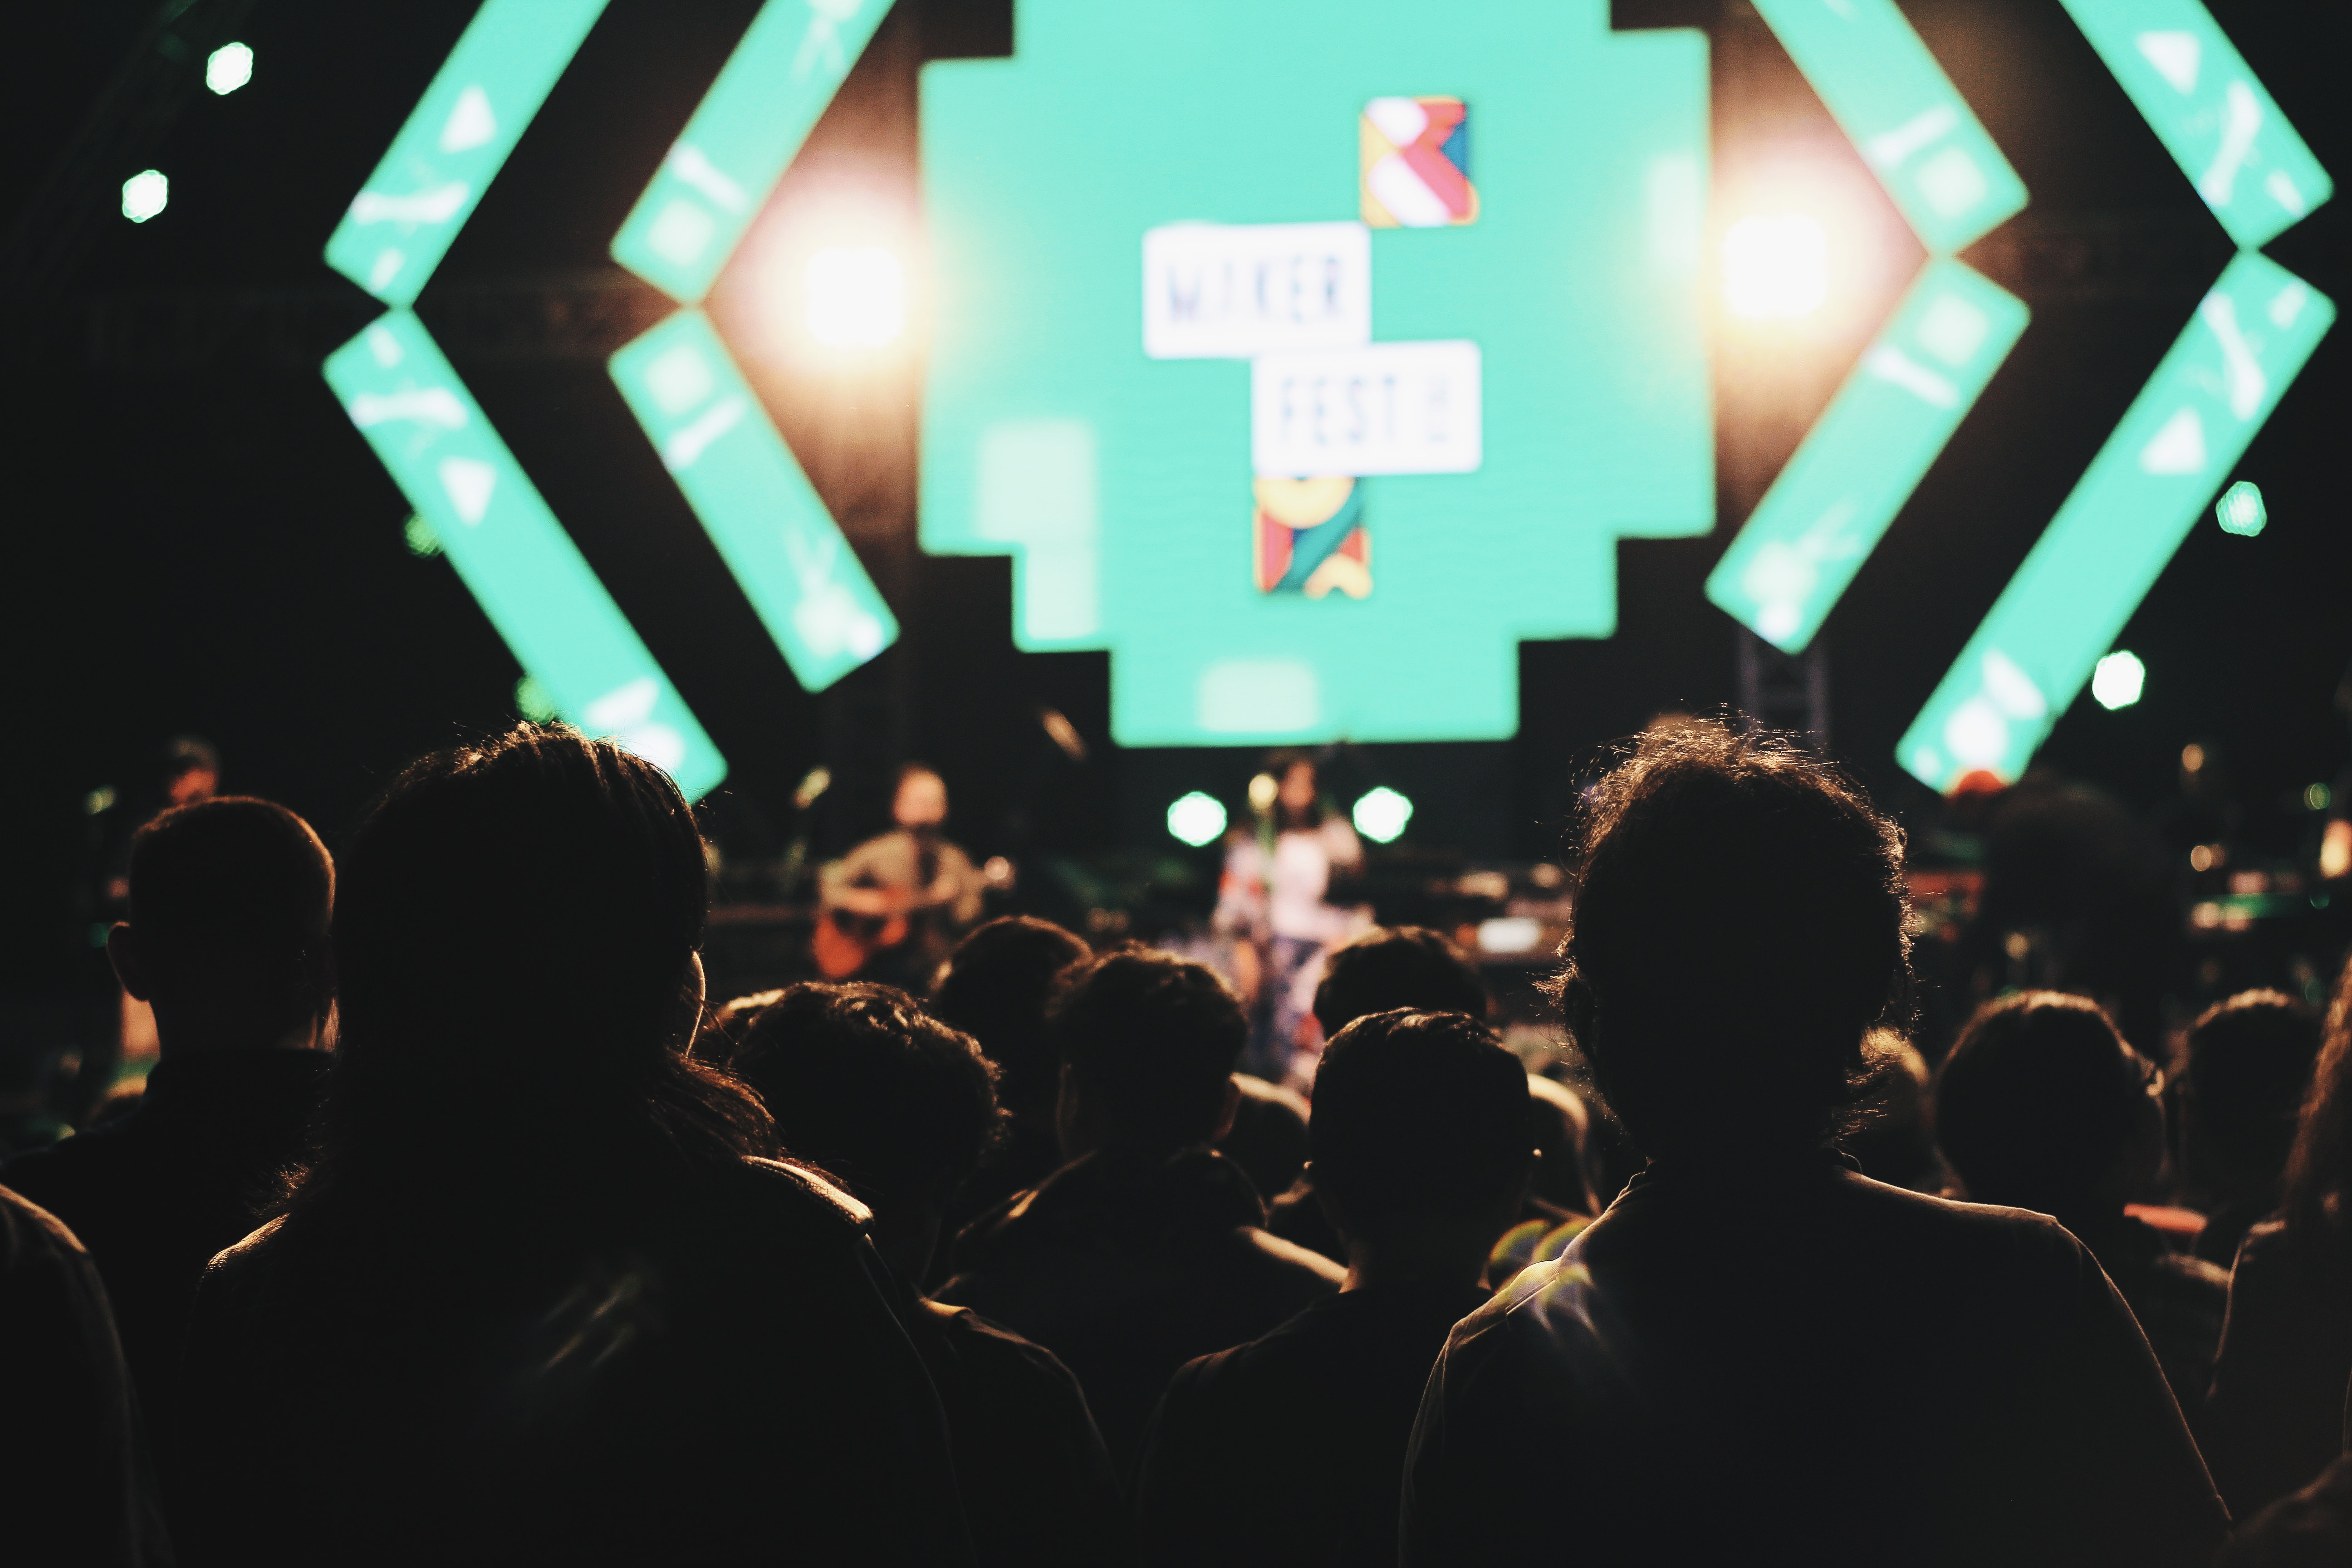 silhouette of crowd of people facing the performer at the stage